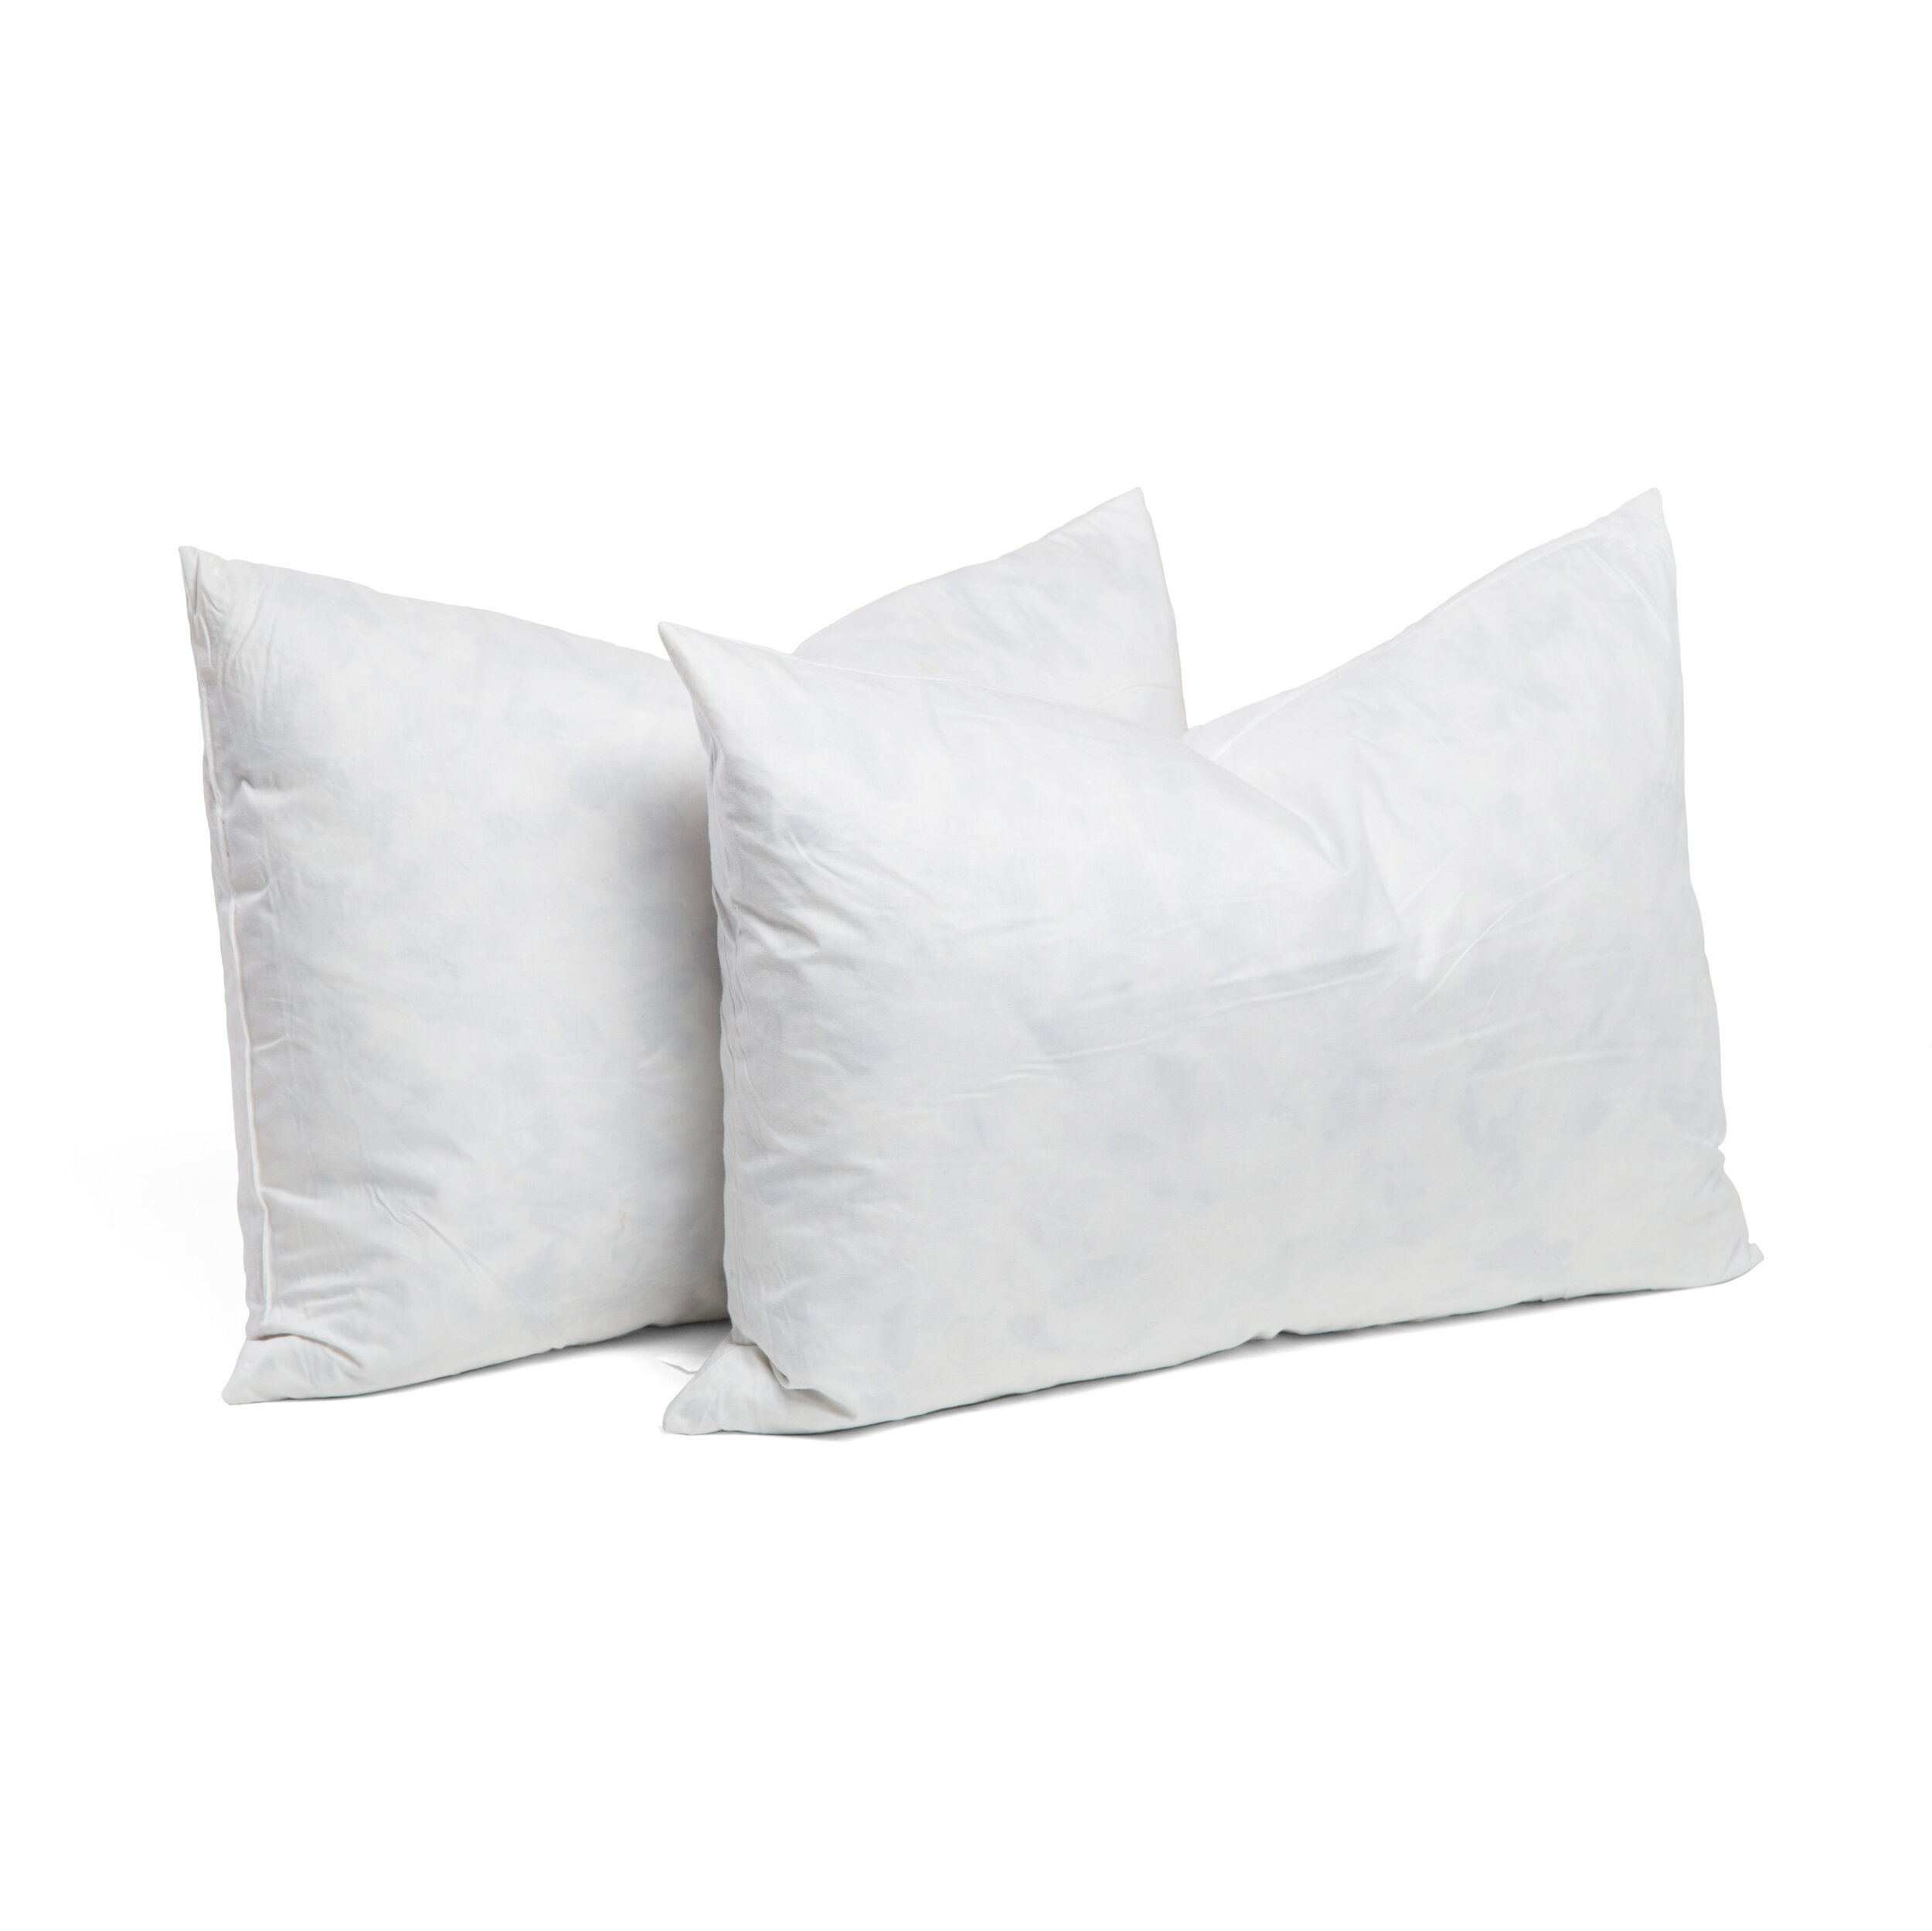 bath love wayfair inserts pillows bed of you allergen beautyrest ll set barrier pillow down polyfill